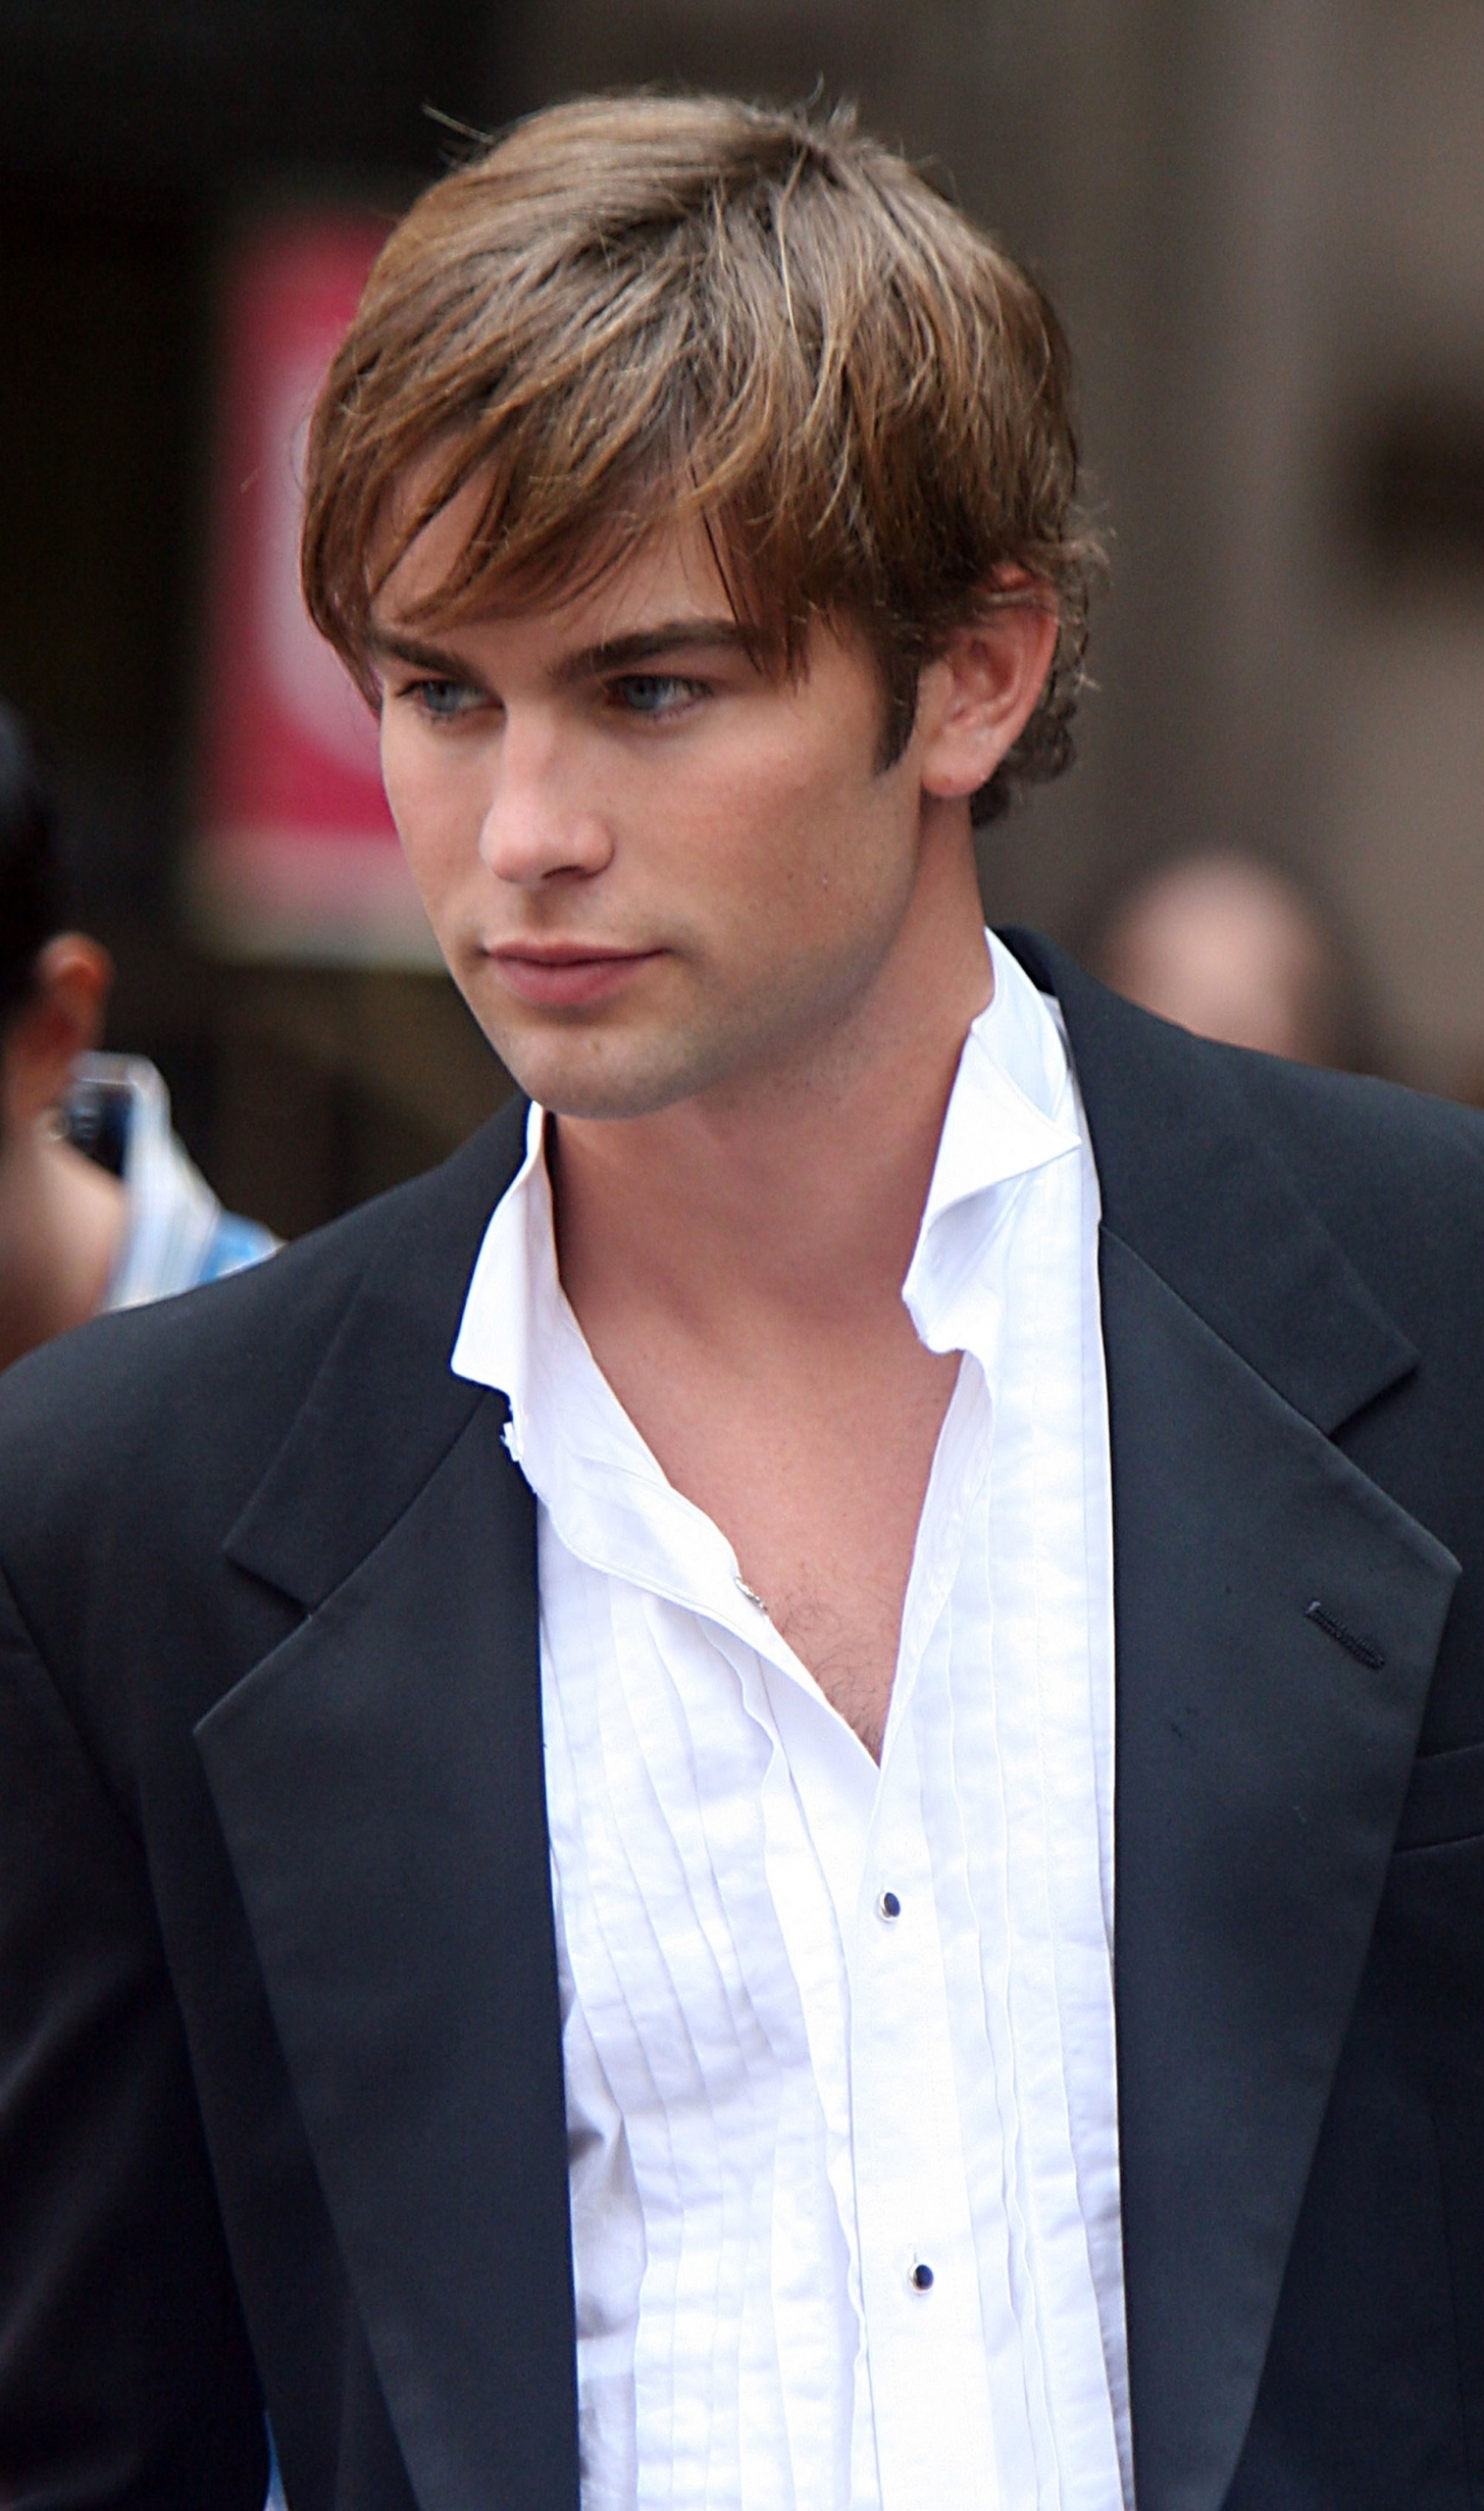 image - chace-crawford-photo | pretty little liars wiki